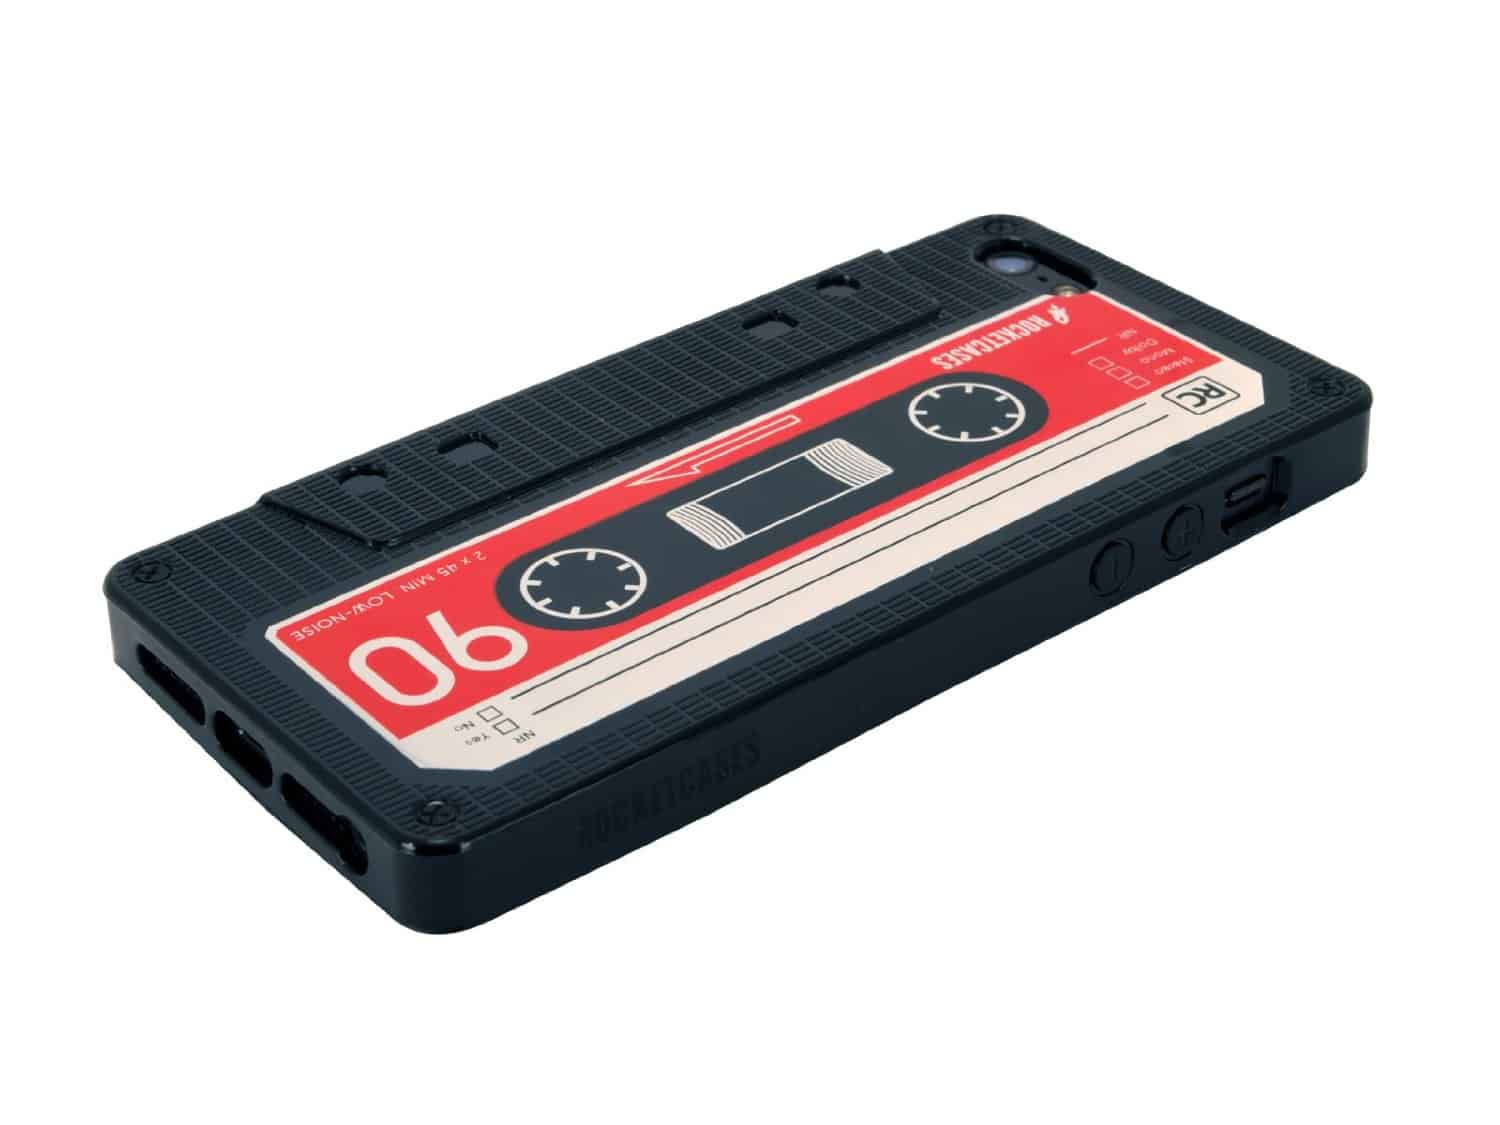 iPhone Cassette Case by Rocketcases Black Retro Design